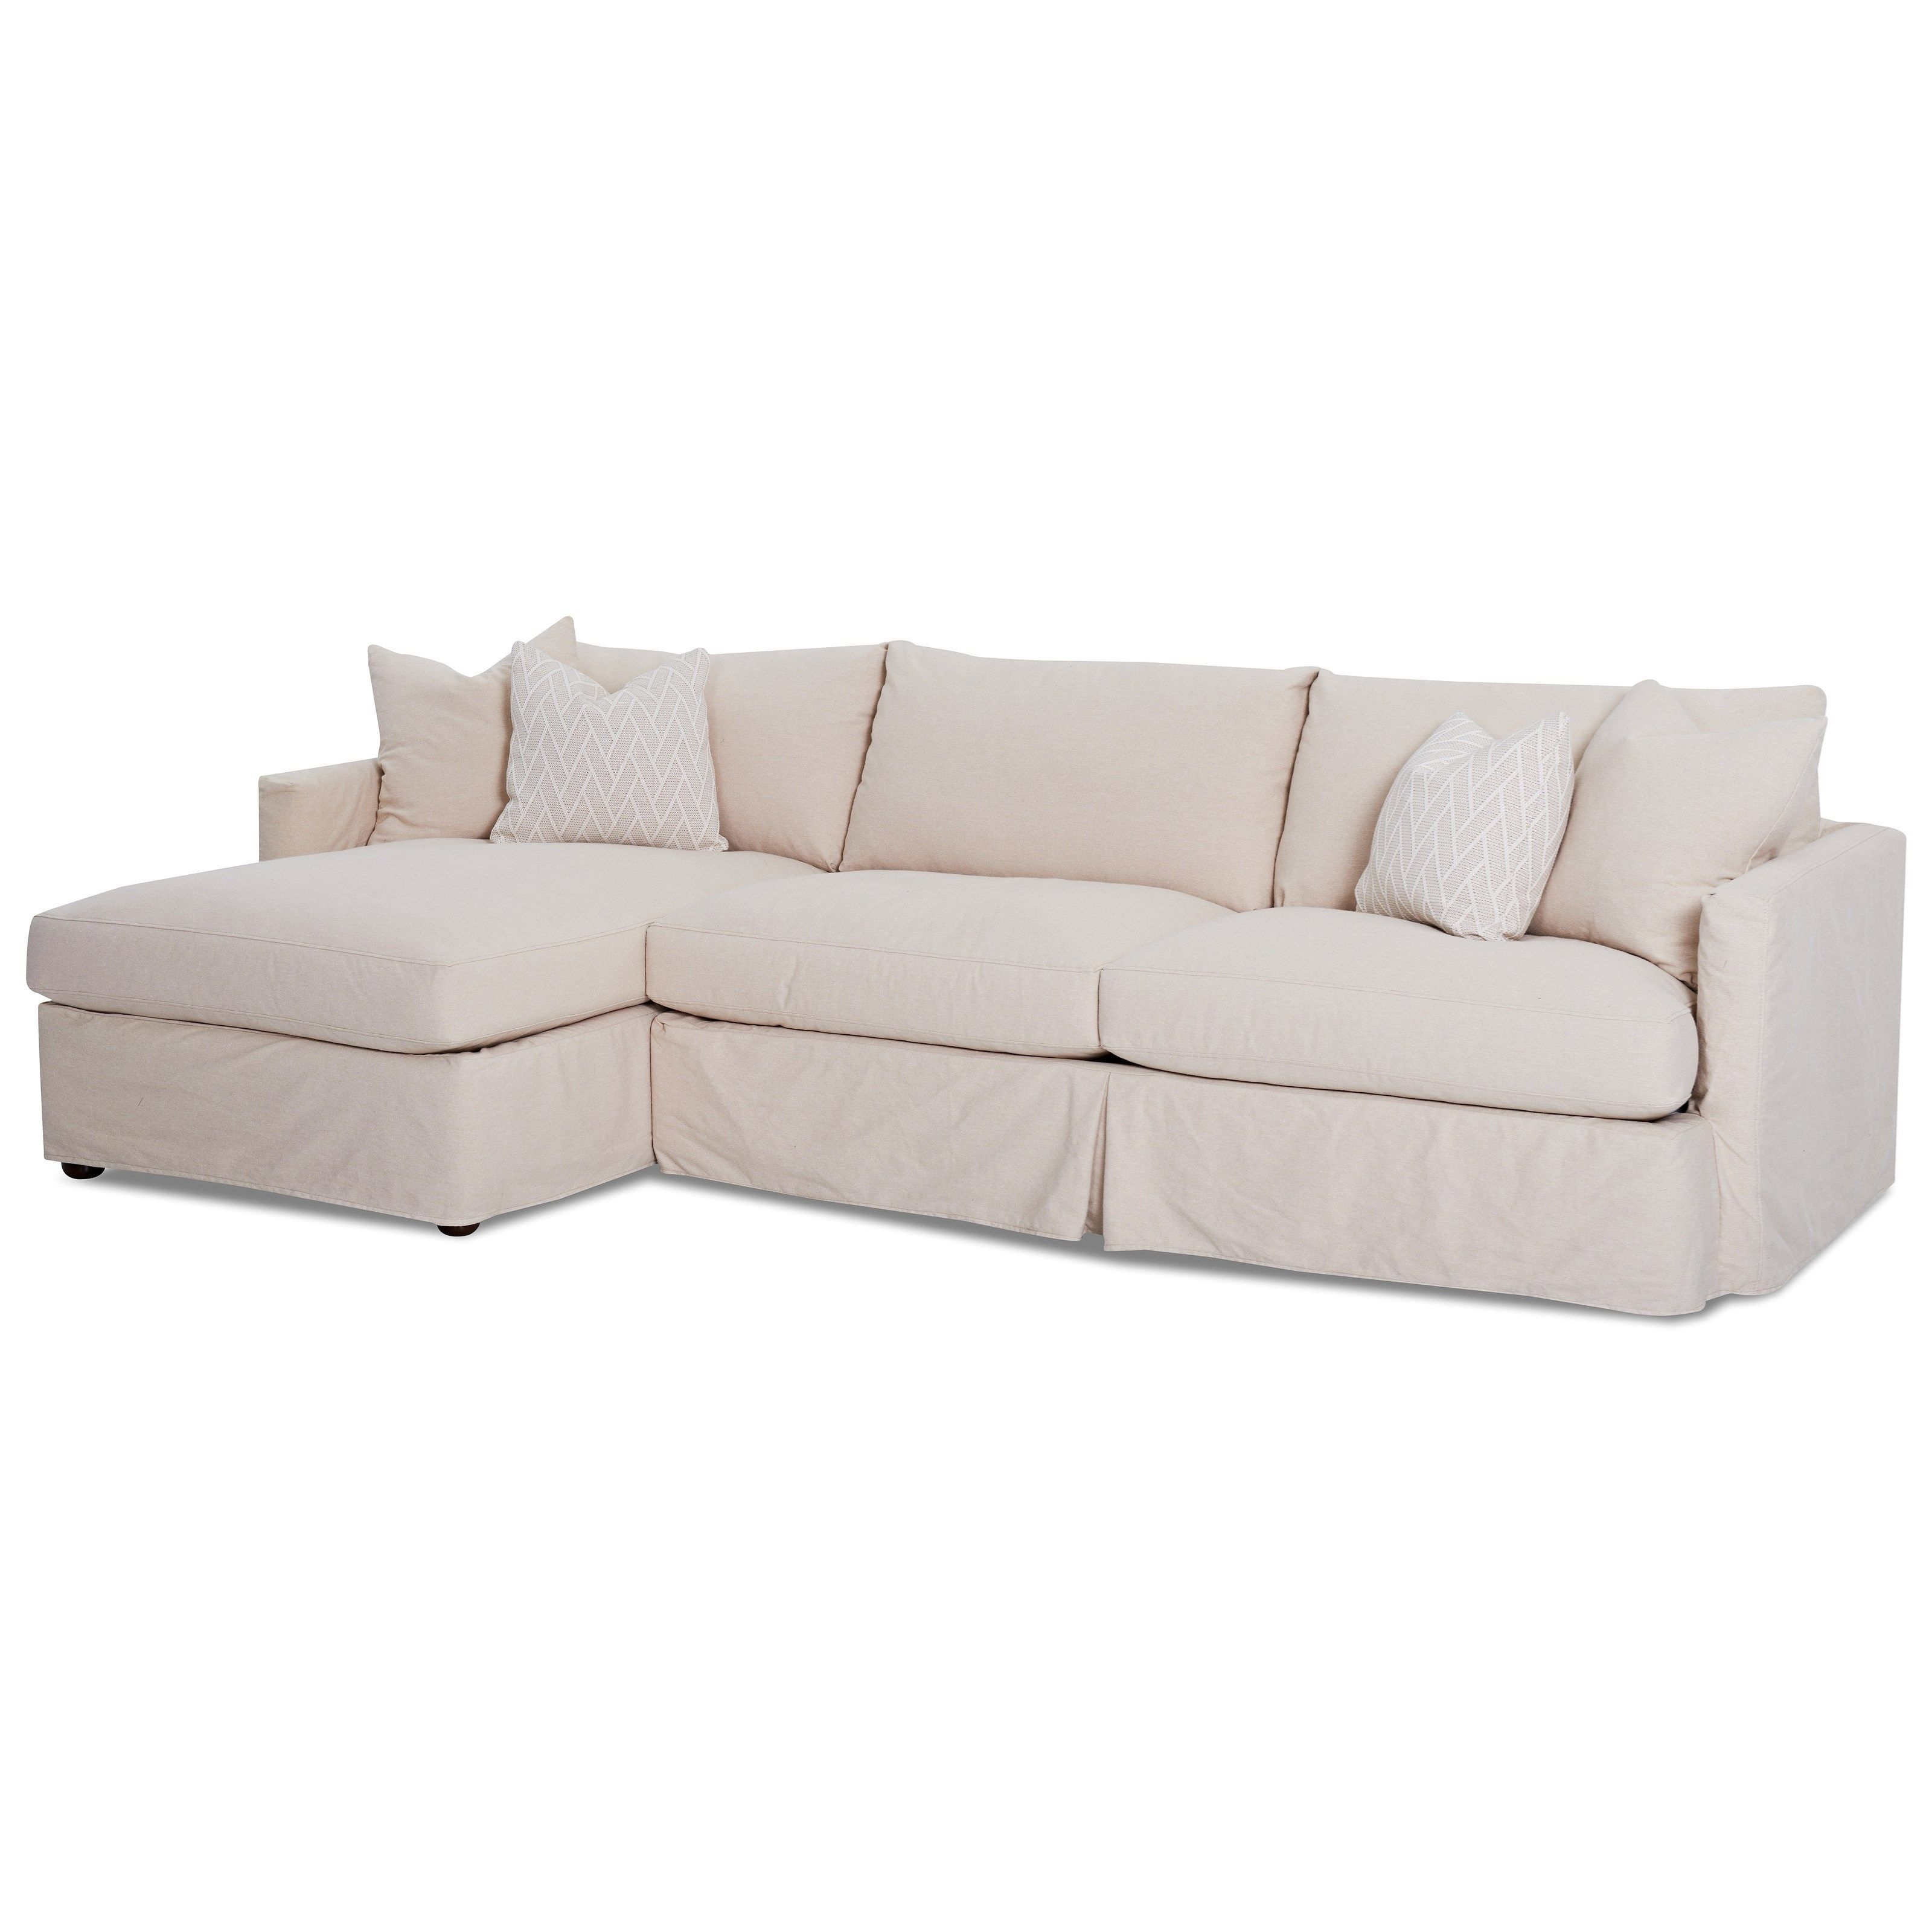 Leisure 2 Pc Sectional Sofa With Slipcoverklaussner | Sun Room With Regard To Johnson City Tn Sectional Sofas (View 4 of 10)